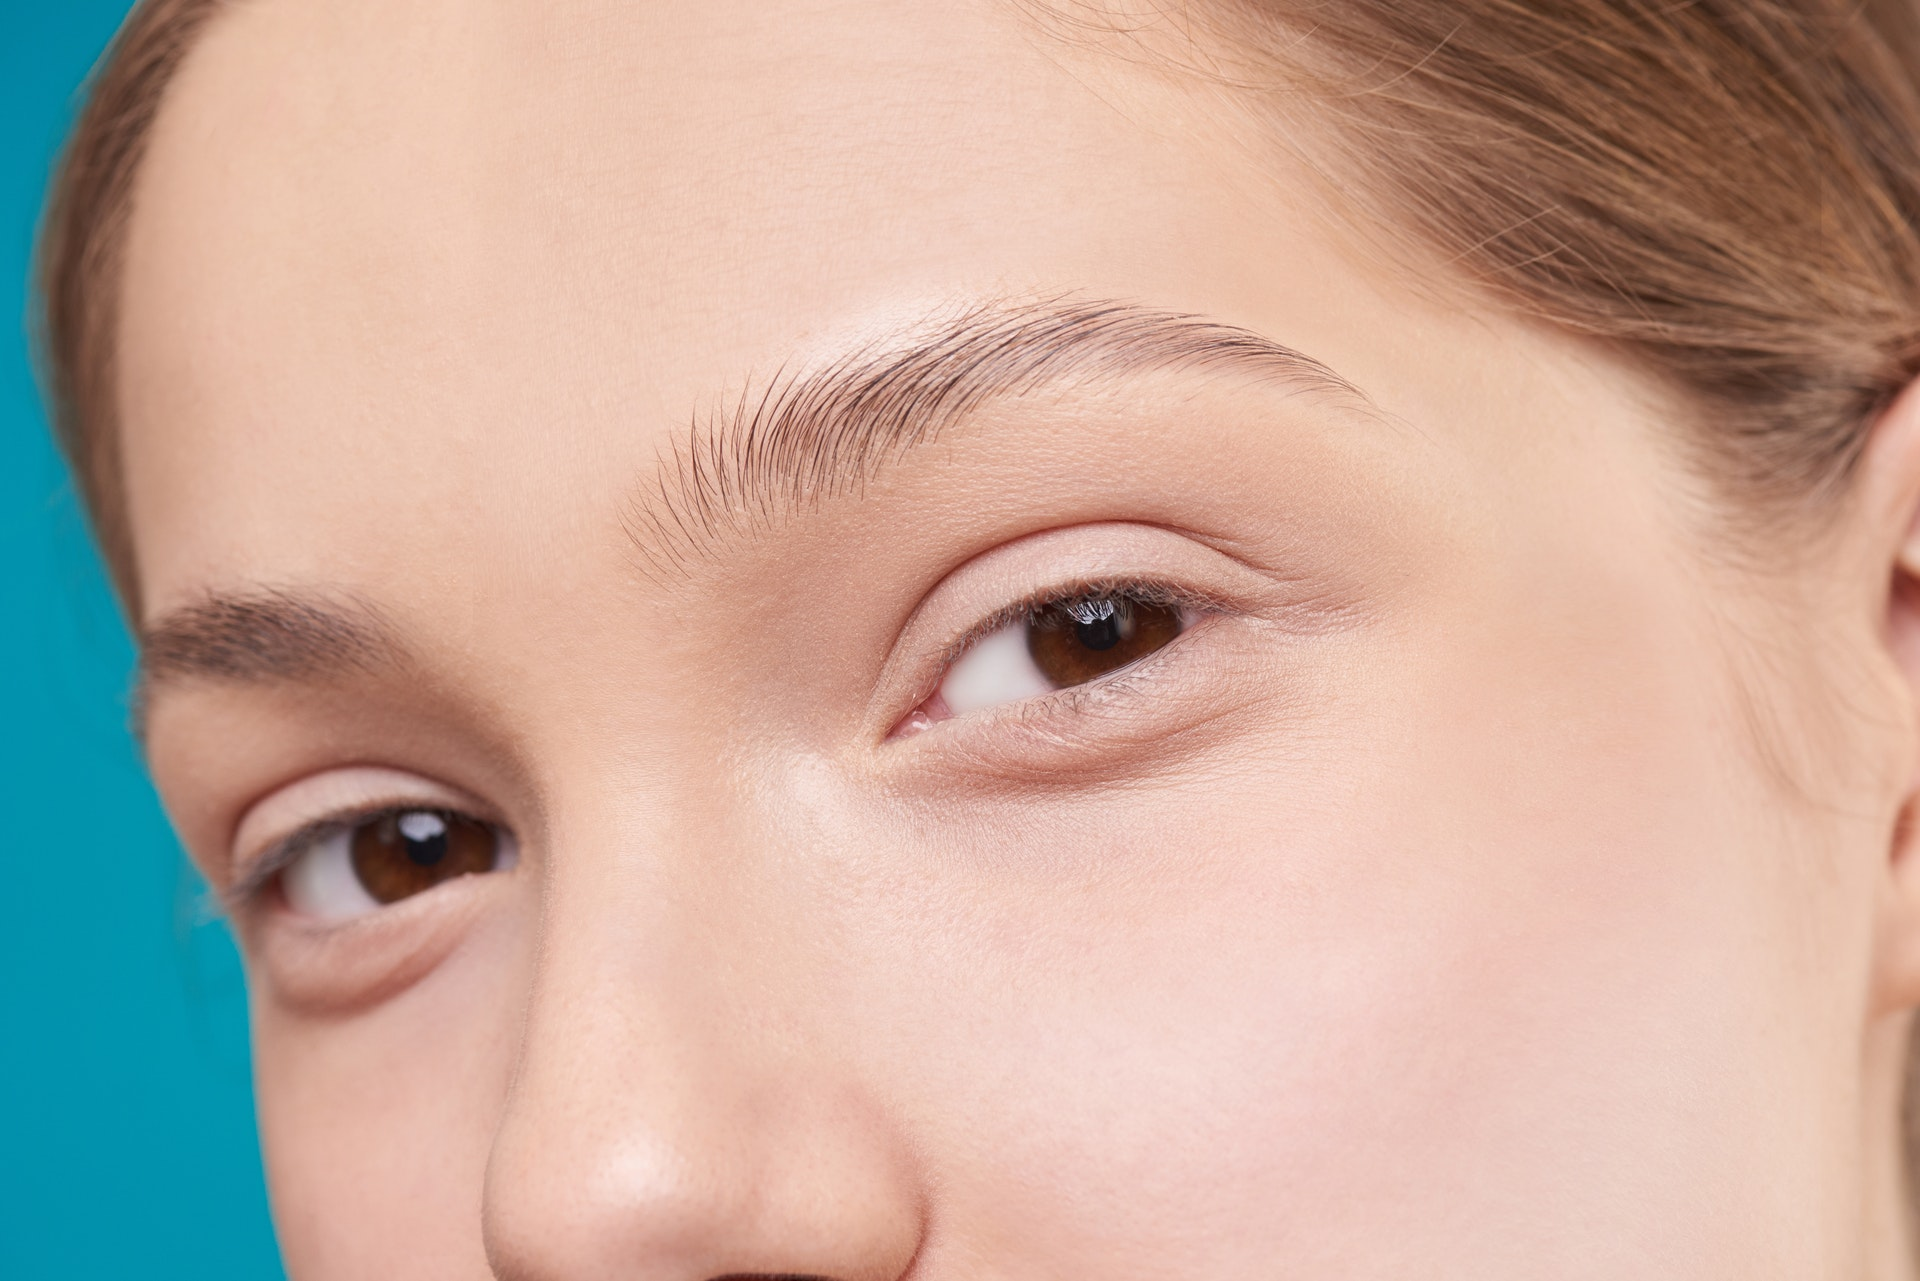 7 close up photo of a woman s eyes 3373714